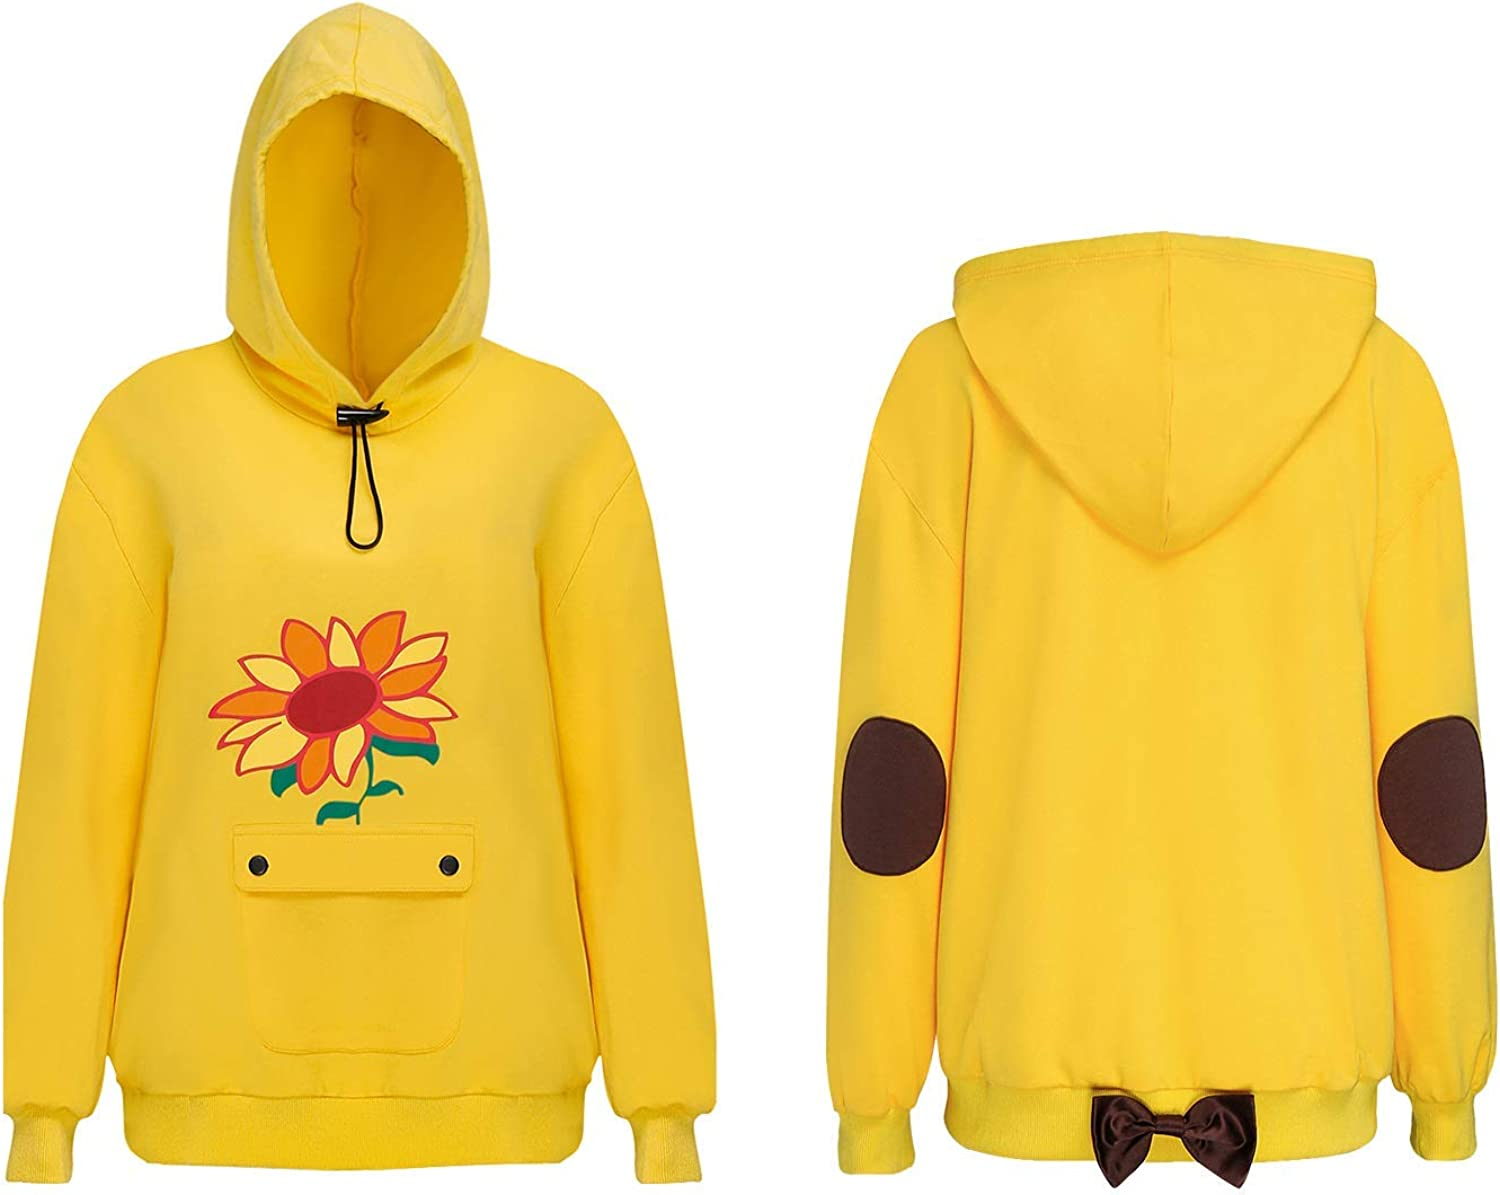 FirstCos Wonder Egg Priority Ohto Ai Cosplay Hoodies Anime Pullover Drawstring Hooded Sweatshirts Yellow Cute Sunflowers Tops